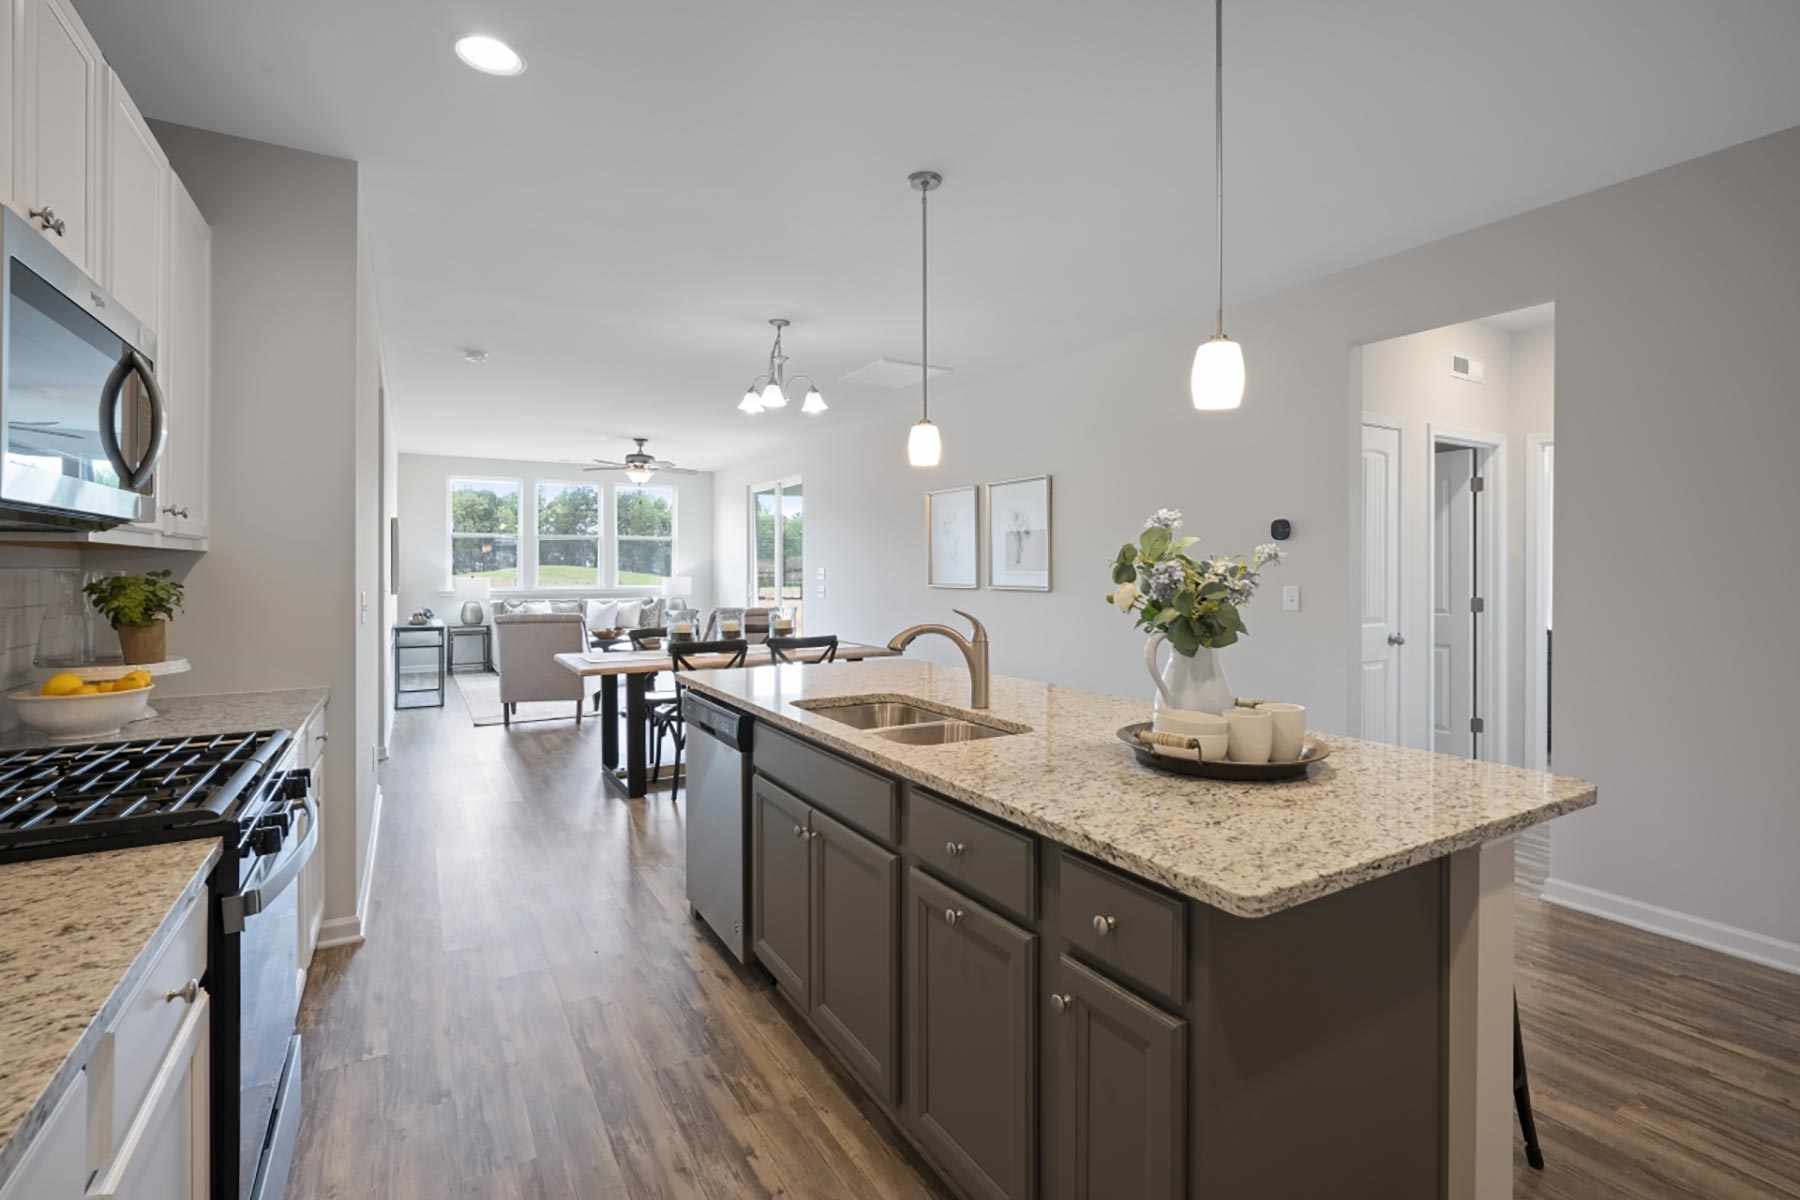 Evelyn Plan Kitchen at Bedford at Flowers Plantation in Clayton North Carolina by Mattamy Homes